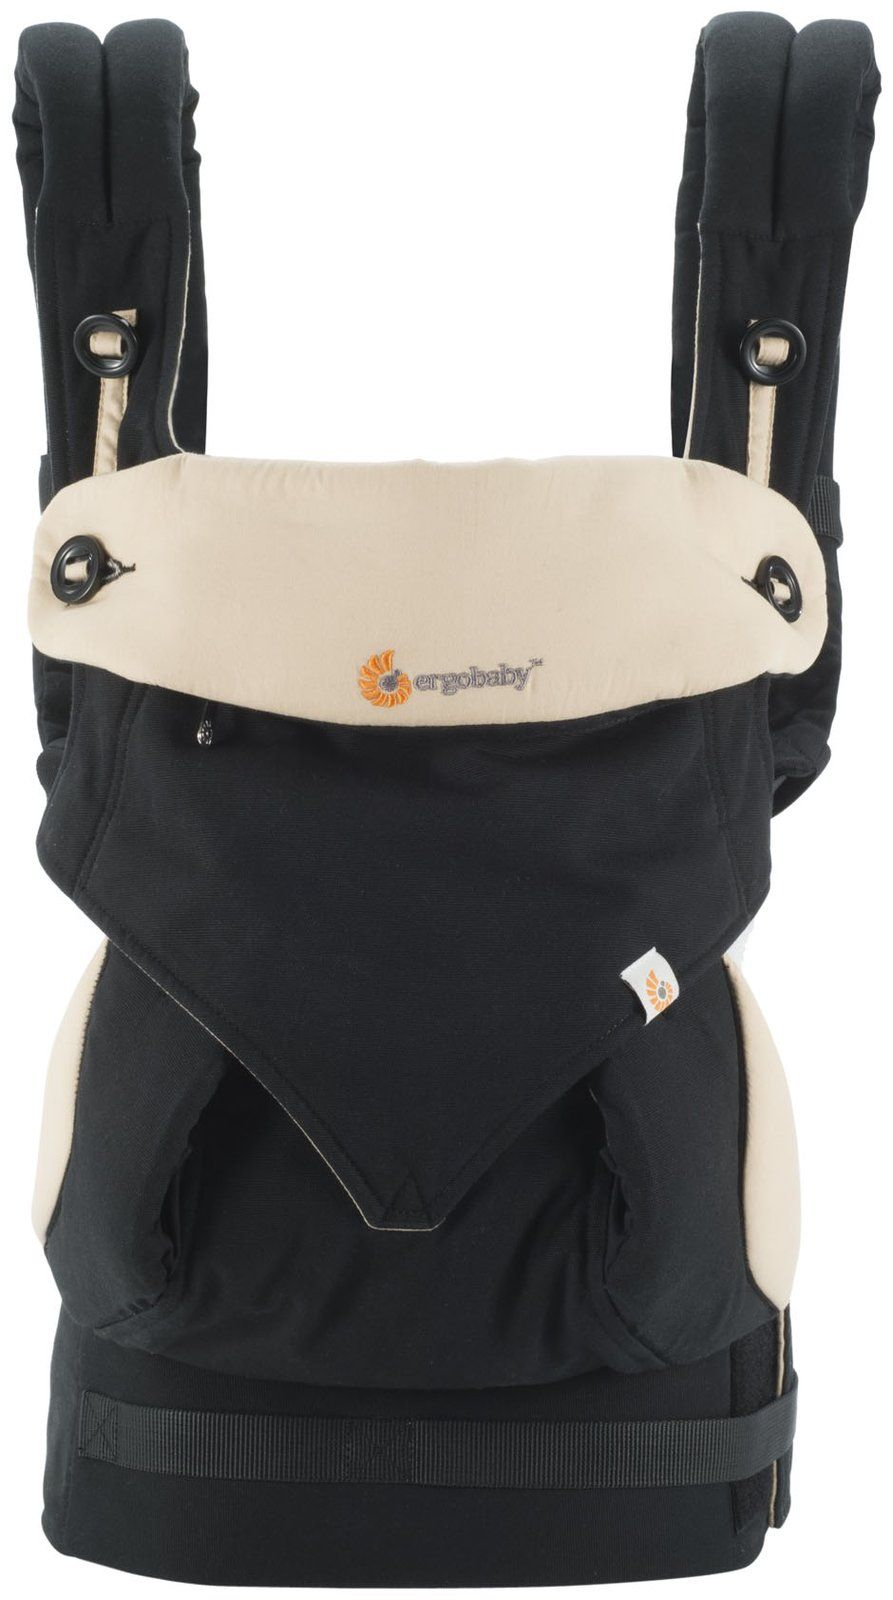 Image of   Bæresele fra Ergobaby - Four Position 360 - Black / Camel